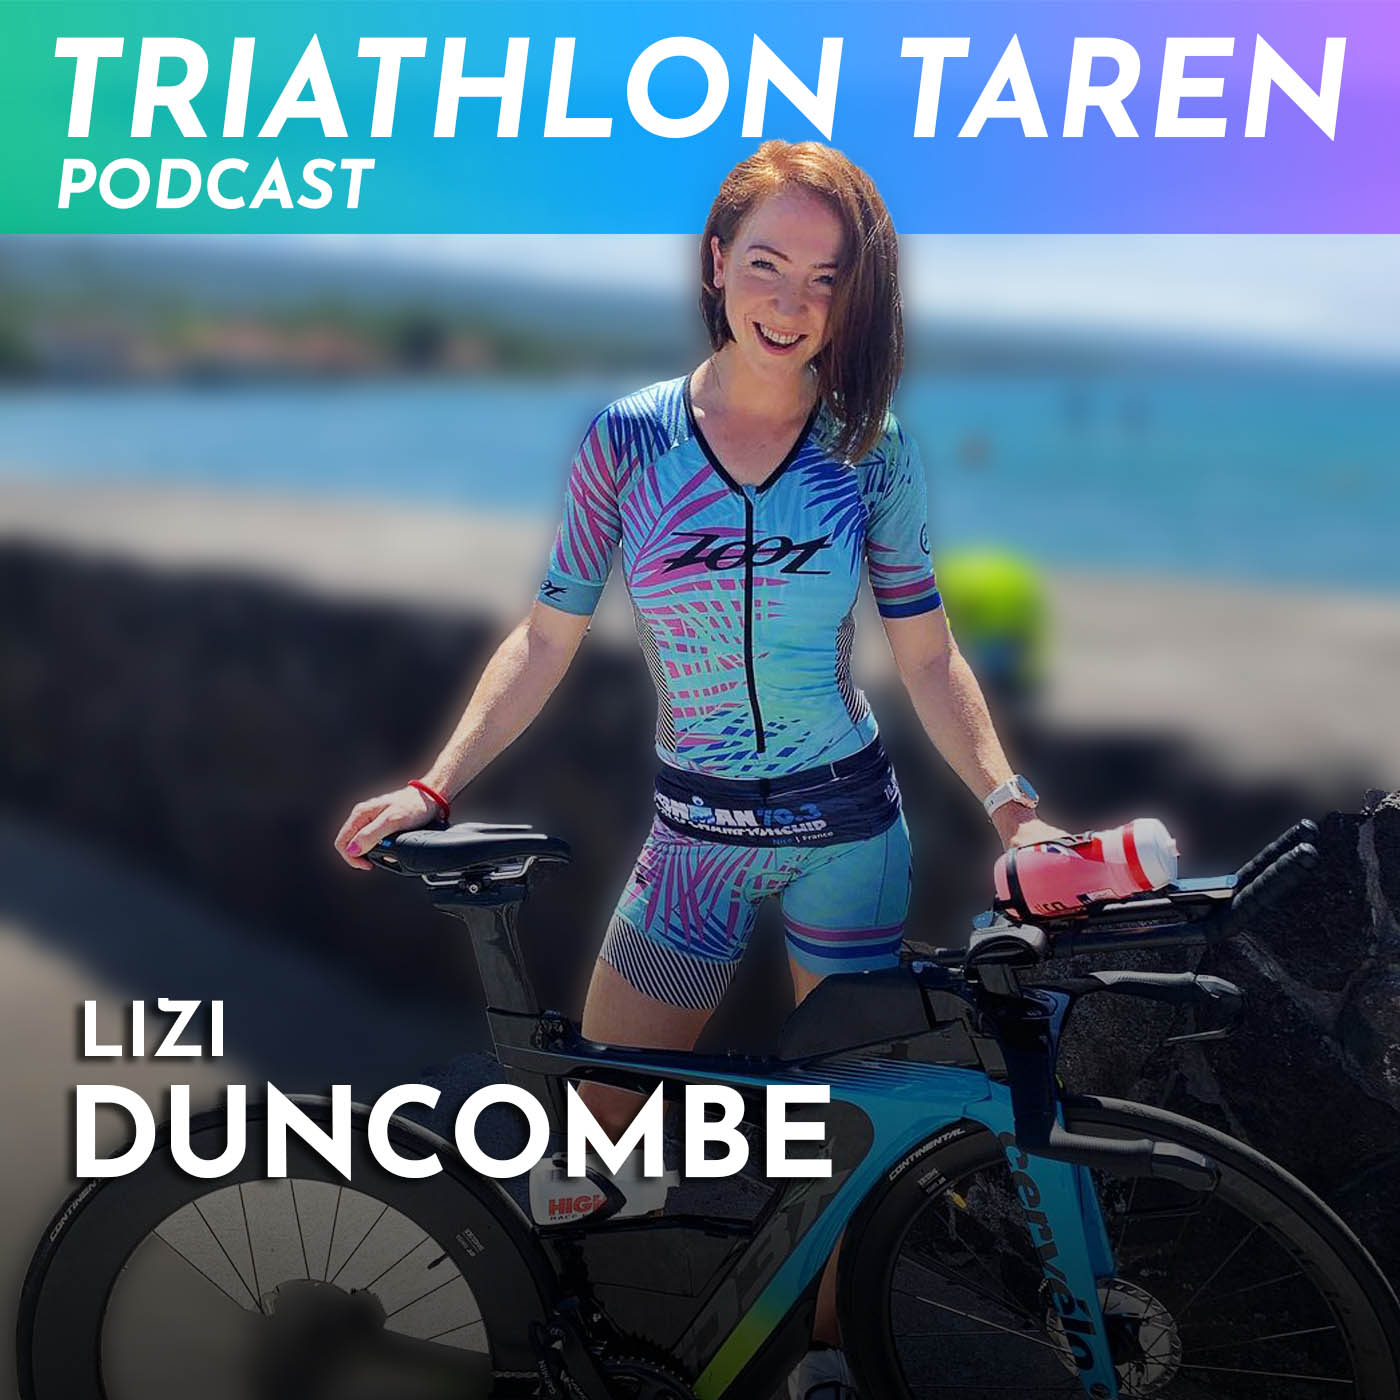 From Zero to Pro in Two Years | Lizi Duncombe